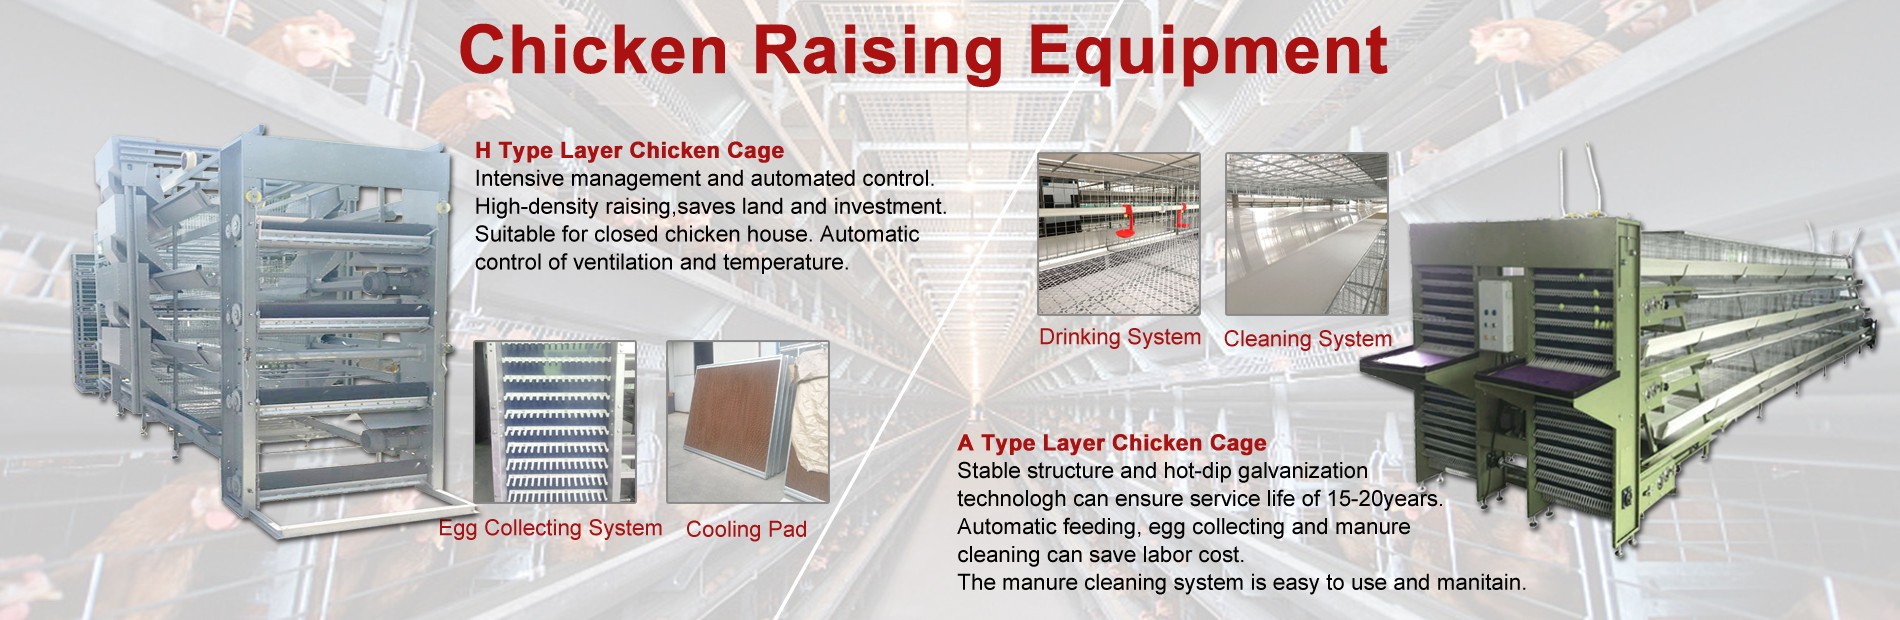 Chicken Raising Equipment